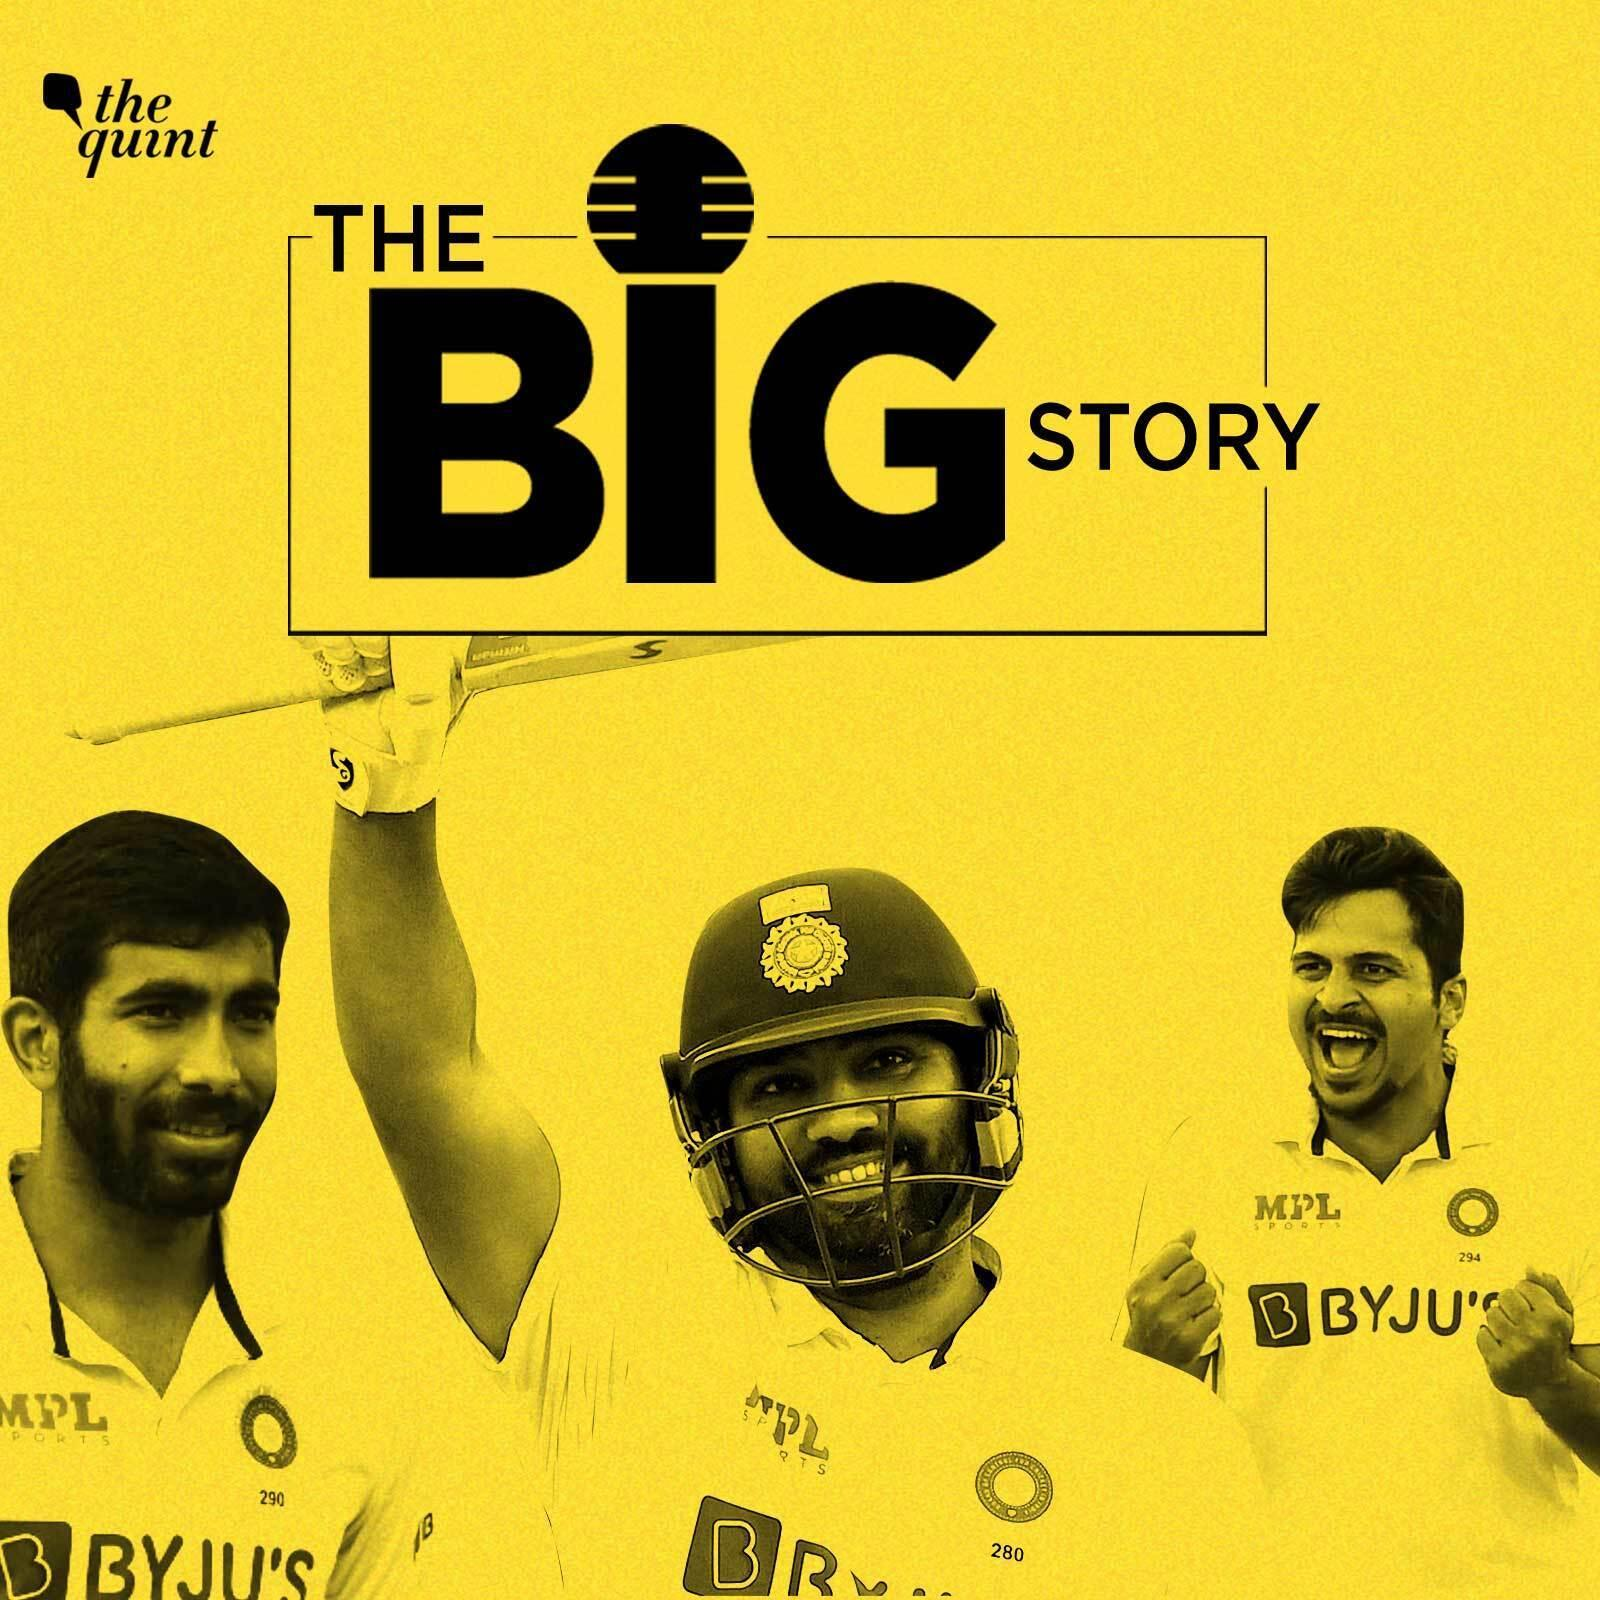 779: What Makes India's Test Victory Against England At The Oval Such a Momentous One